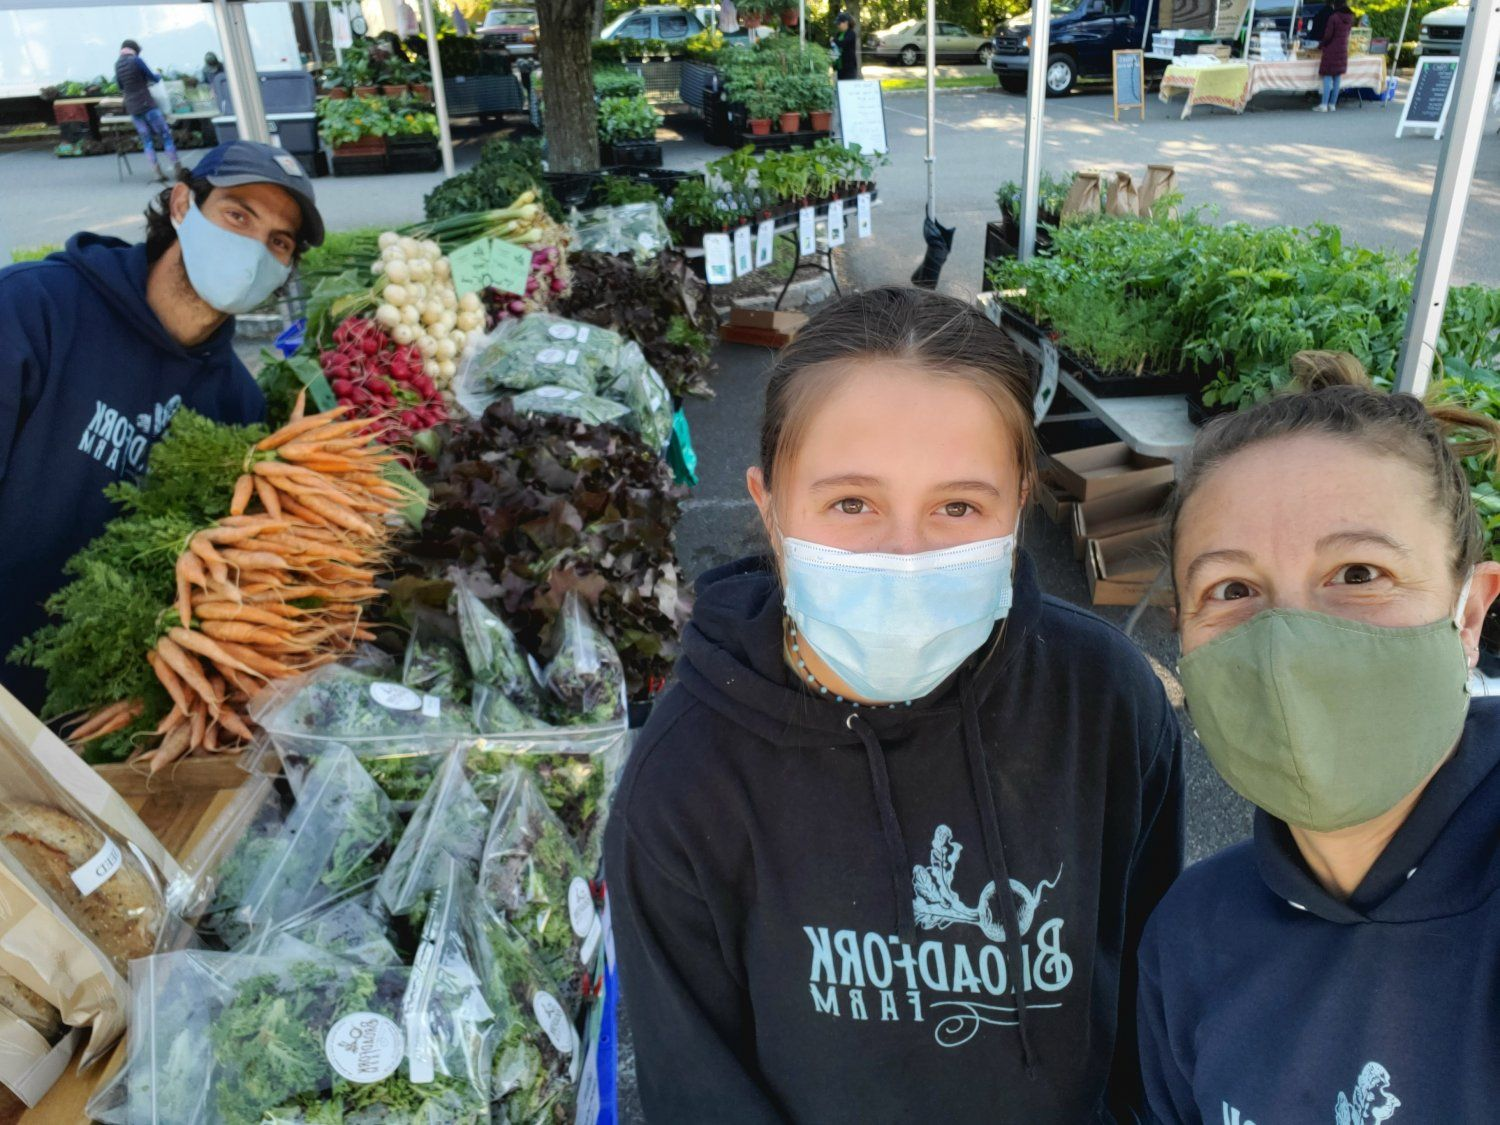 Next Happening: Digital FarmStand for Sat., May 8